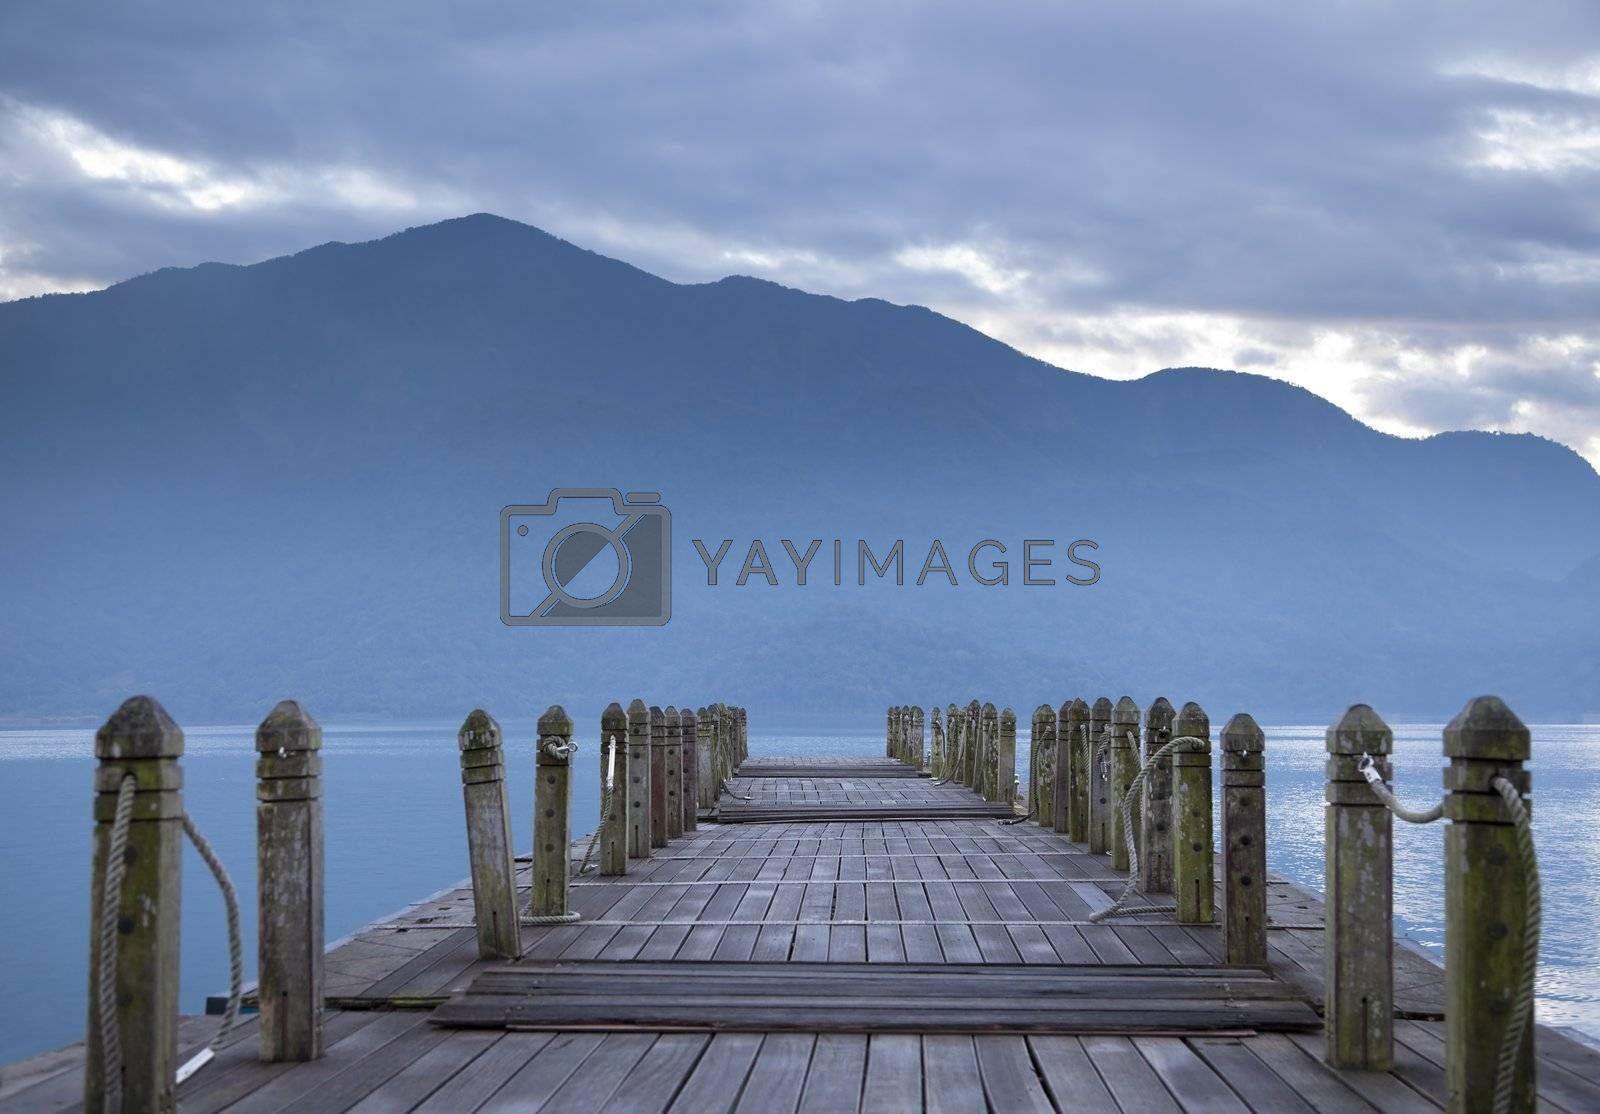 Royalty free image of look on pier and mountain in the morning by tomwang